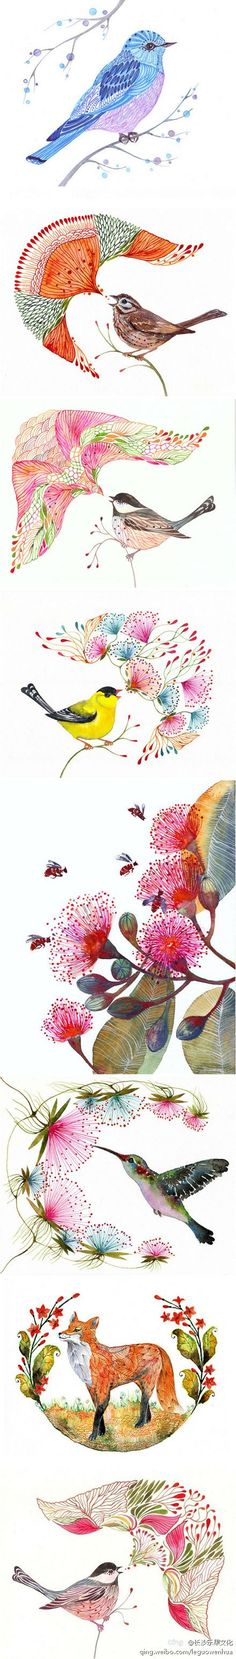 Ola Liola's animal watercolor paintings & illustrations by TevaKiwi These pretty botanical & animal images could make very cute tattoos. it's hard Art And Illustration, Illustrations, Watercolor Animals, Watercolor Flowers, Grafik Design, Art Plastique, Bird Art, Painting & Drawing, Watercolor Paintings